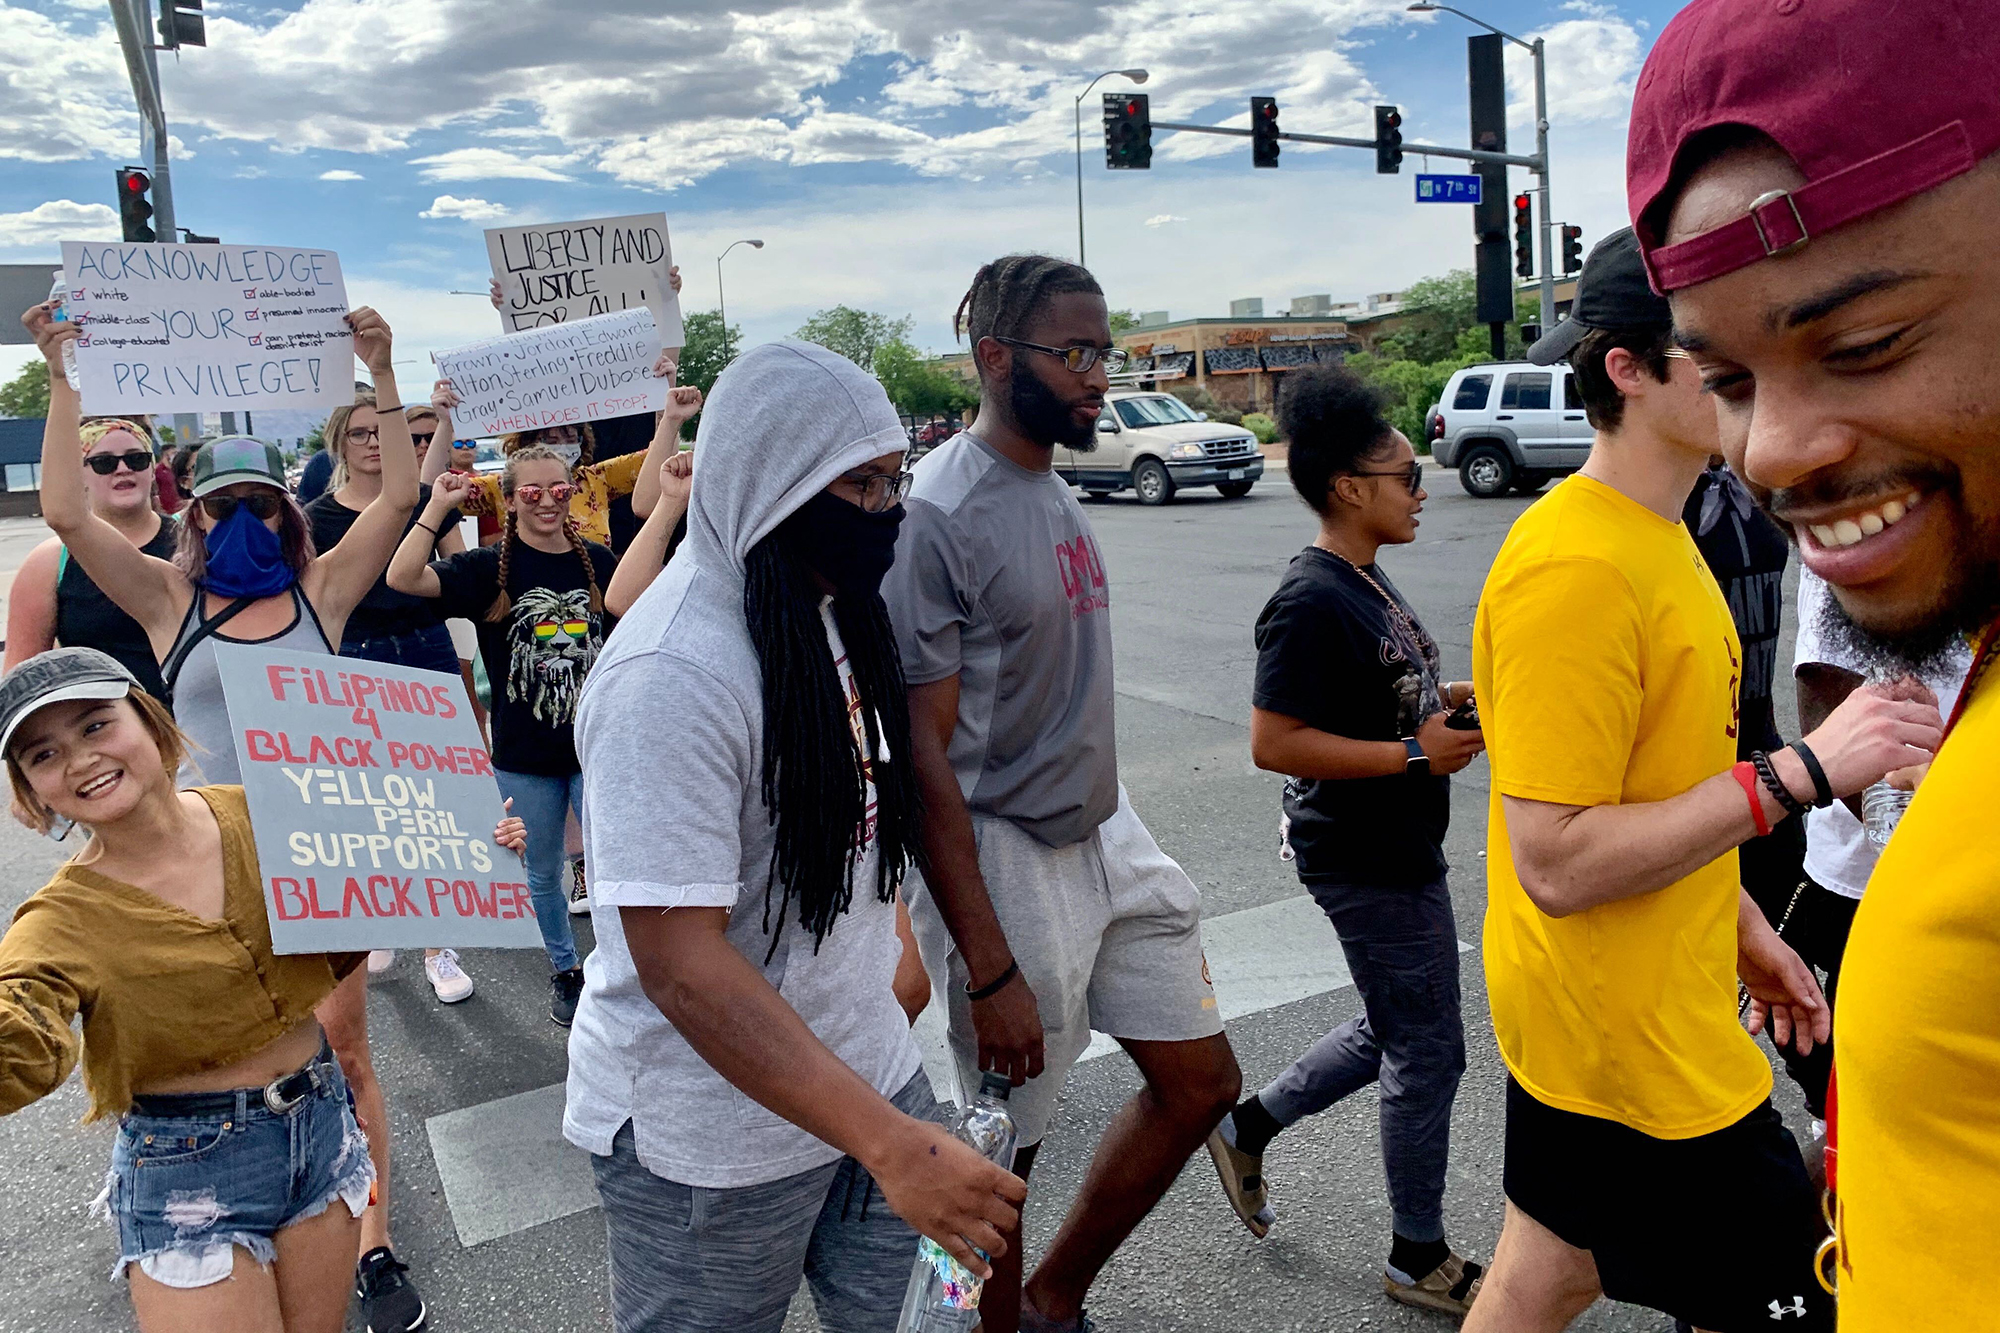 Protesters, including many Colorado Mesa University students, march in Grand Junction in a demonstration against the death of George Floyd and police brutality on Monday, June 1, 2020.